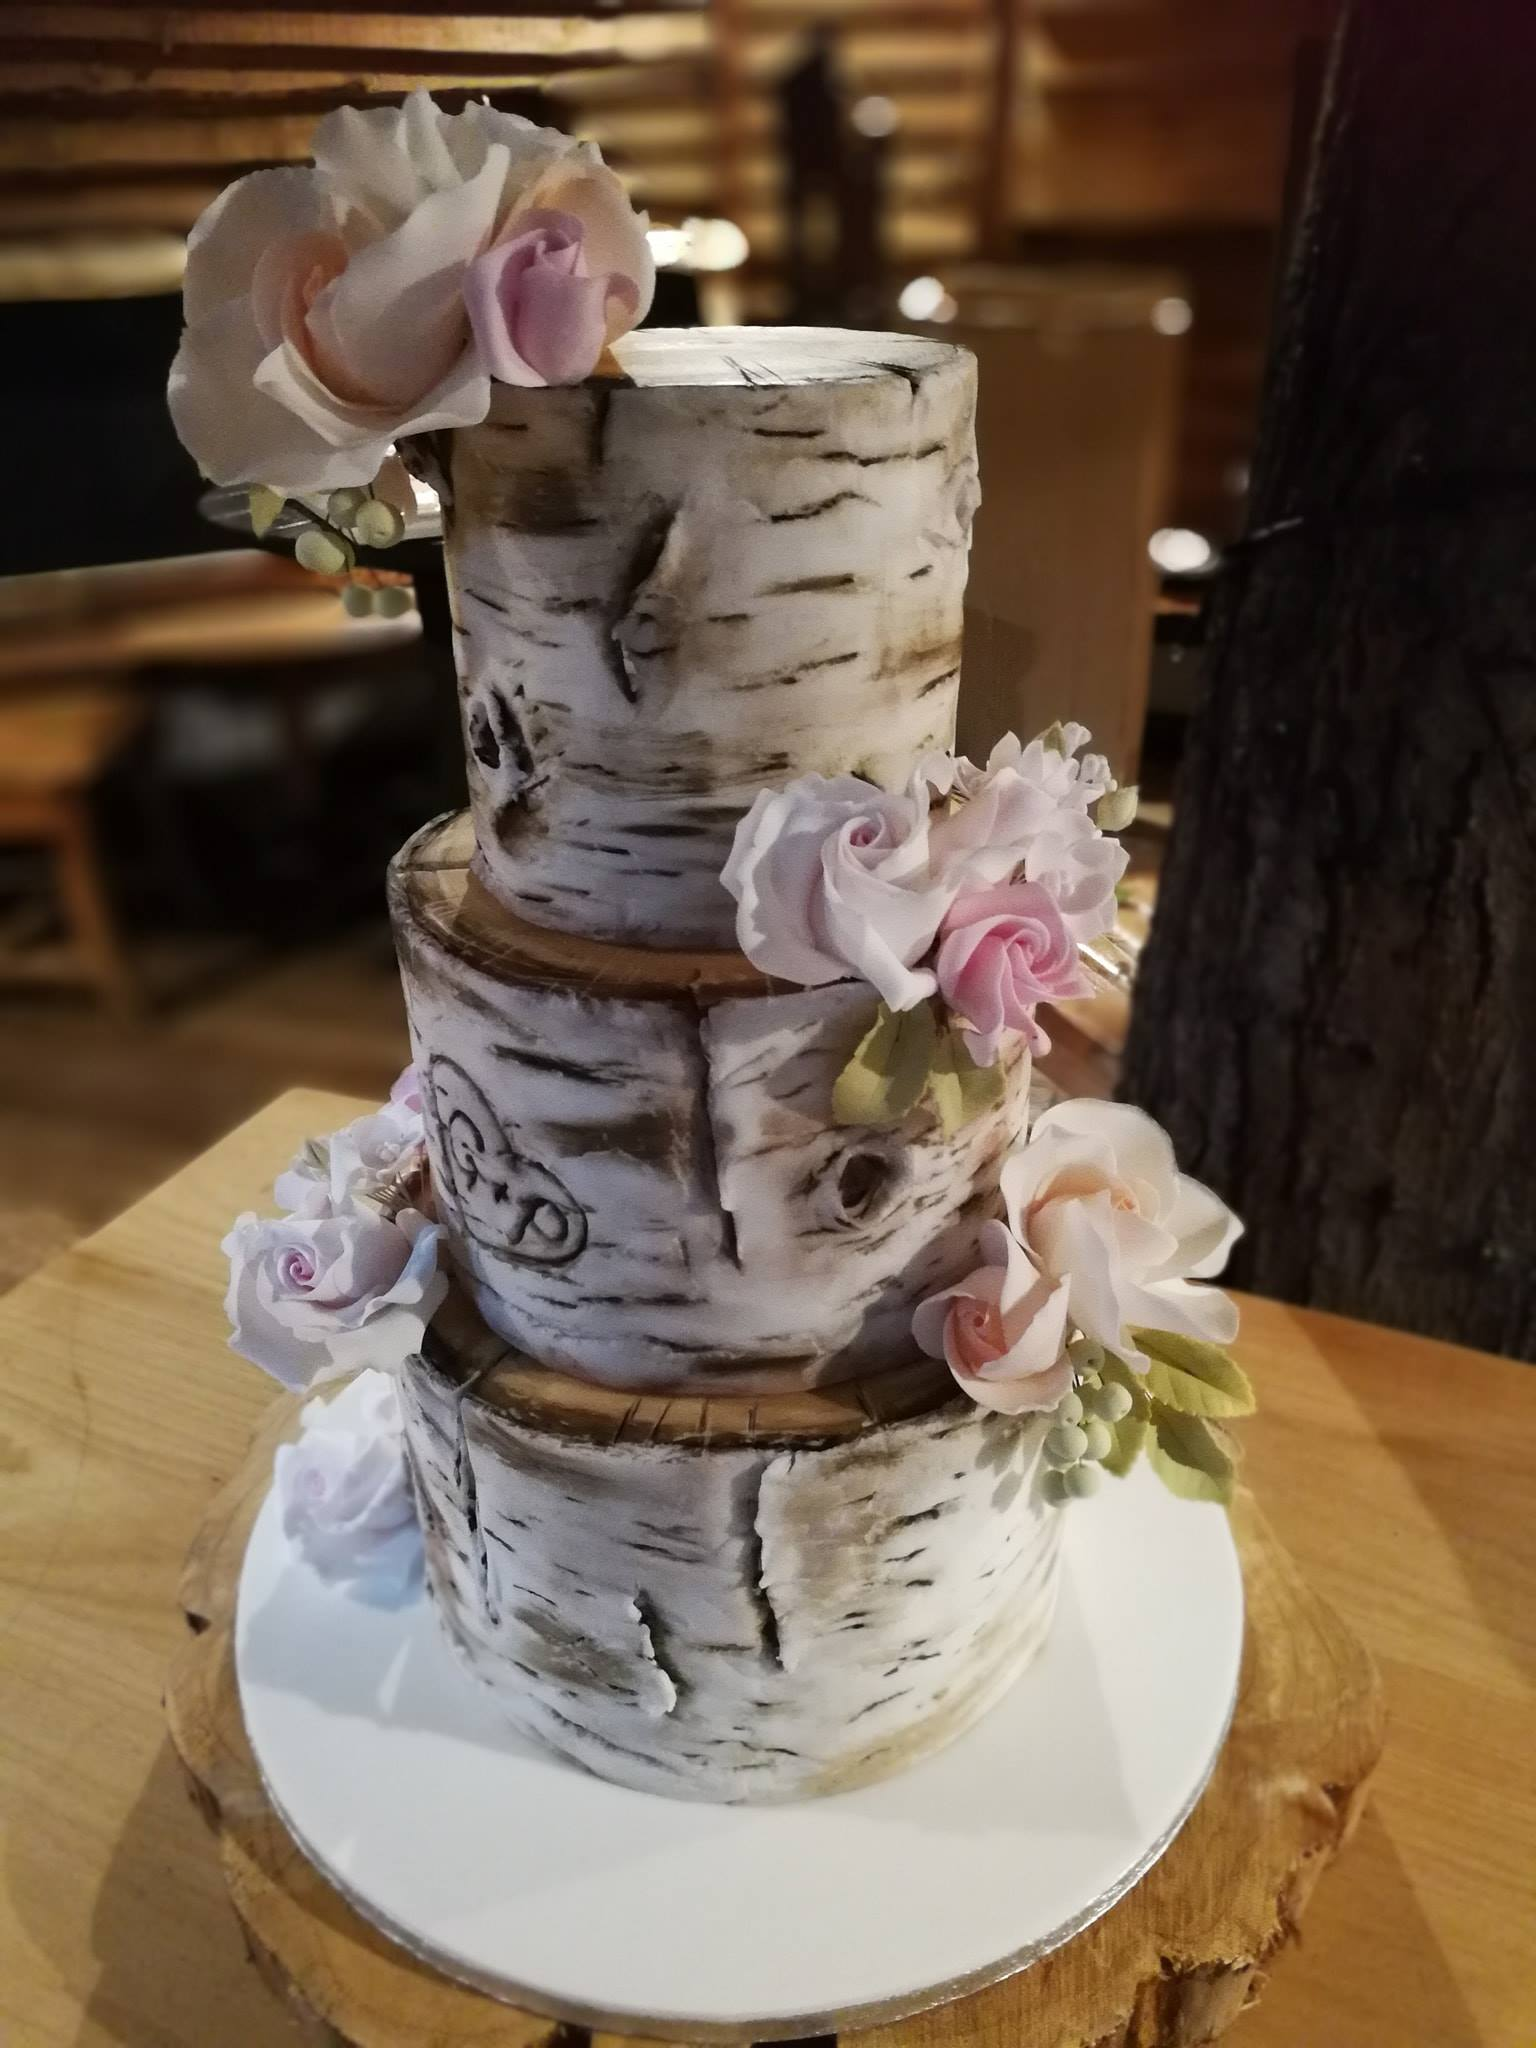 White Birch wedding cake with peach and pale pink sugar roses and green foliage